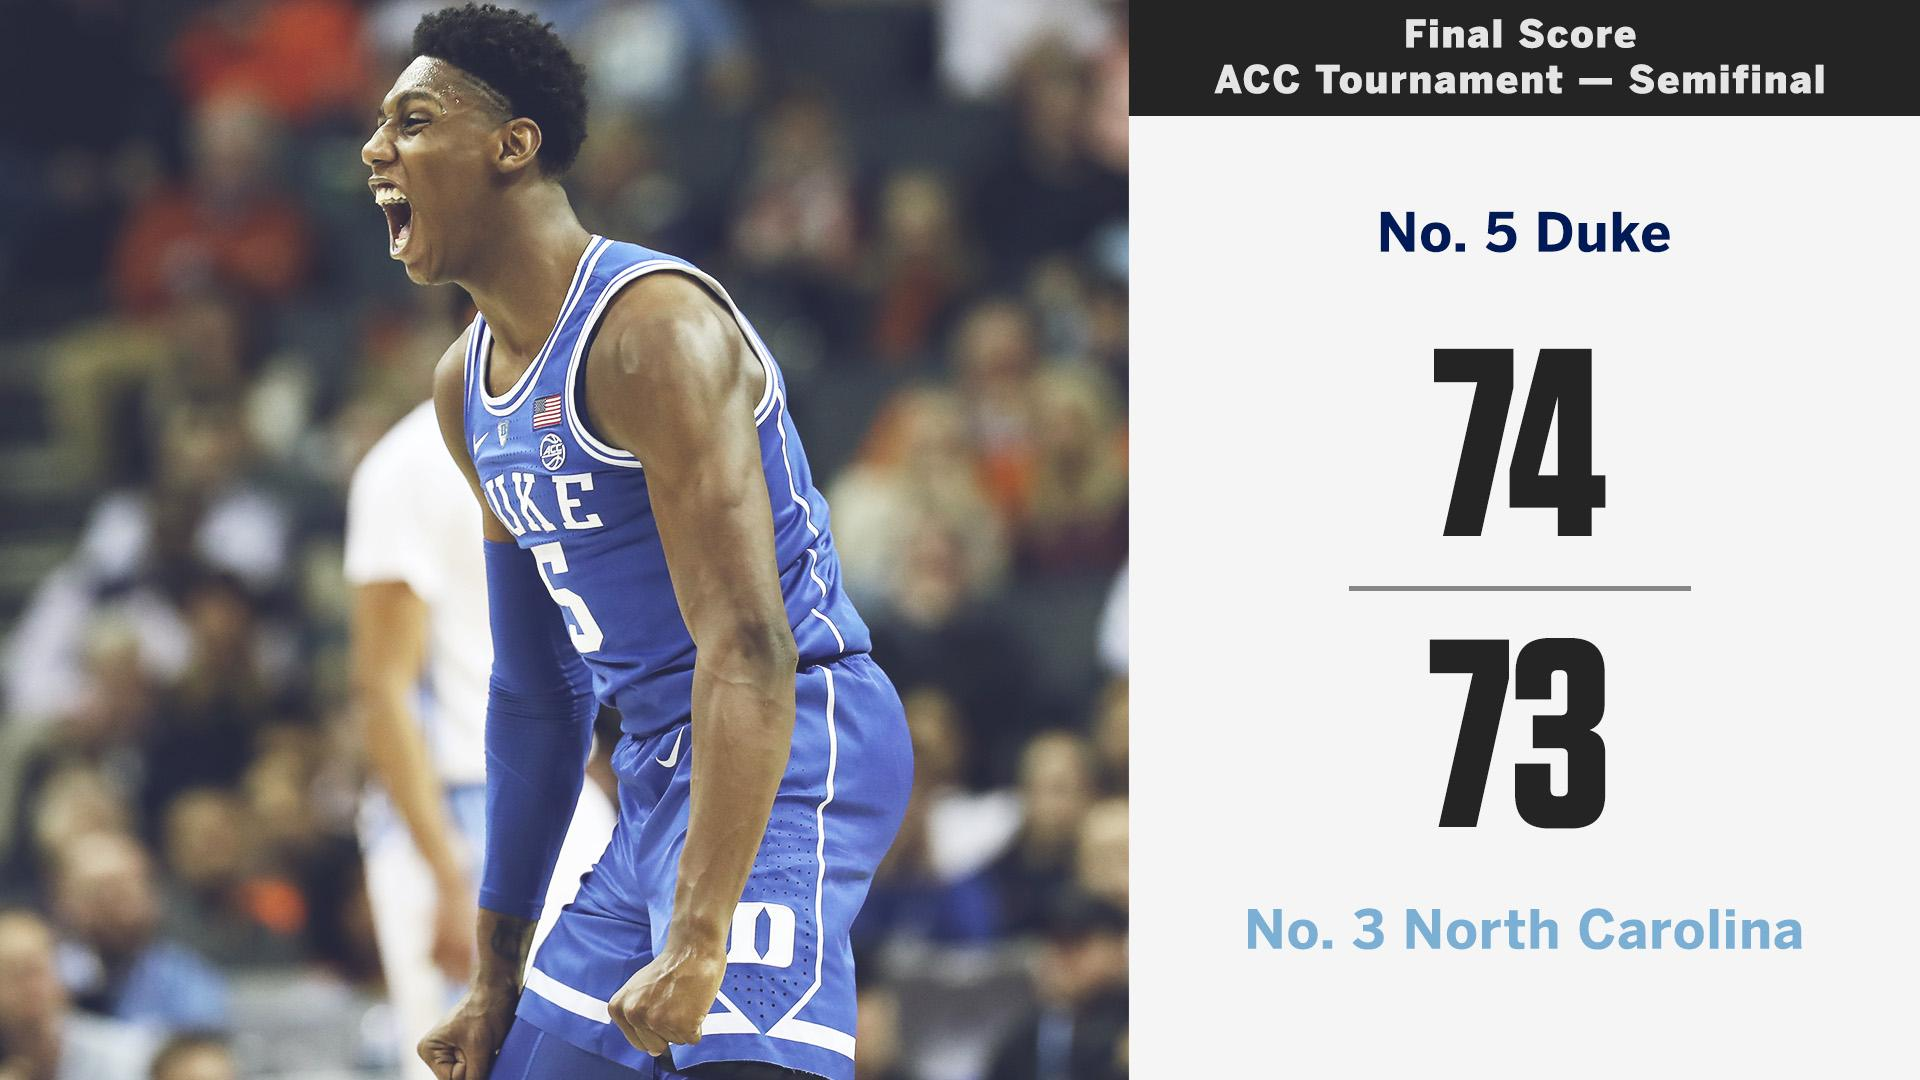 THE TRILOGY LIVED UP TO THE HYPE!  No. 5 Duke knocks off No. 3 UNC to advance to the ACC Tournament Final �� https://t.co/O8riiNS4qO